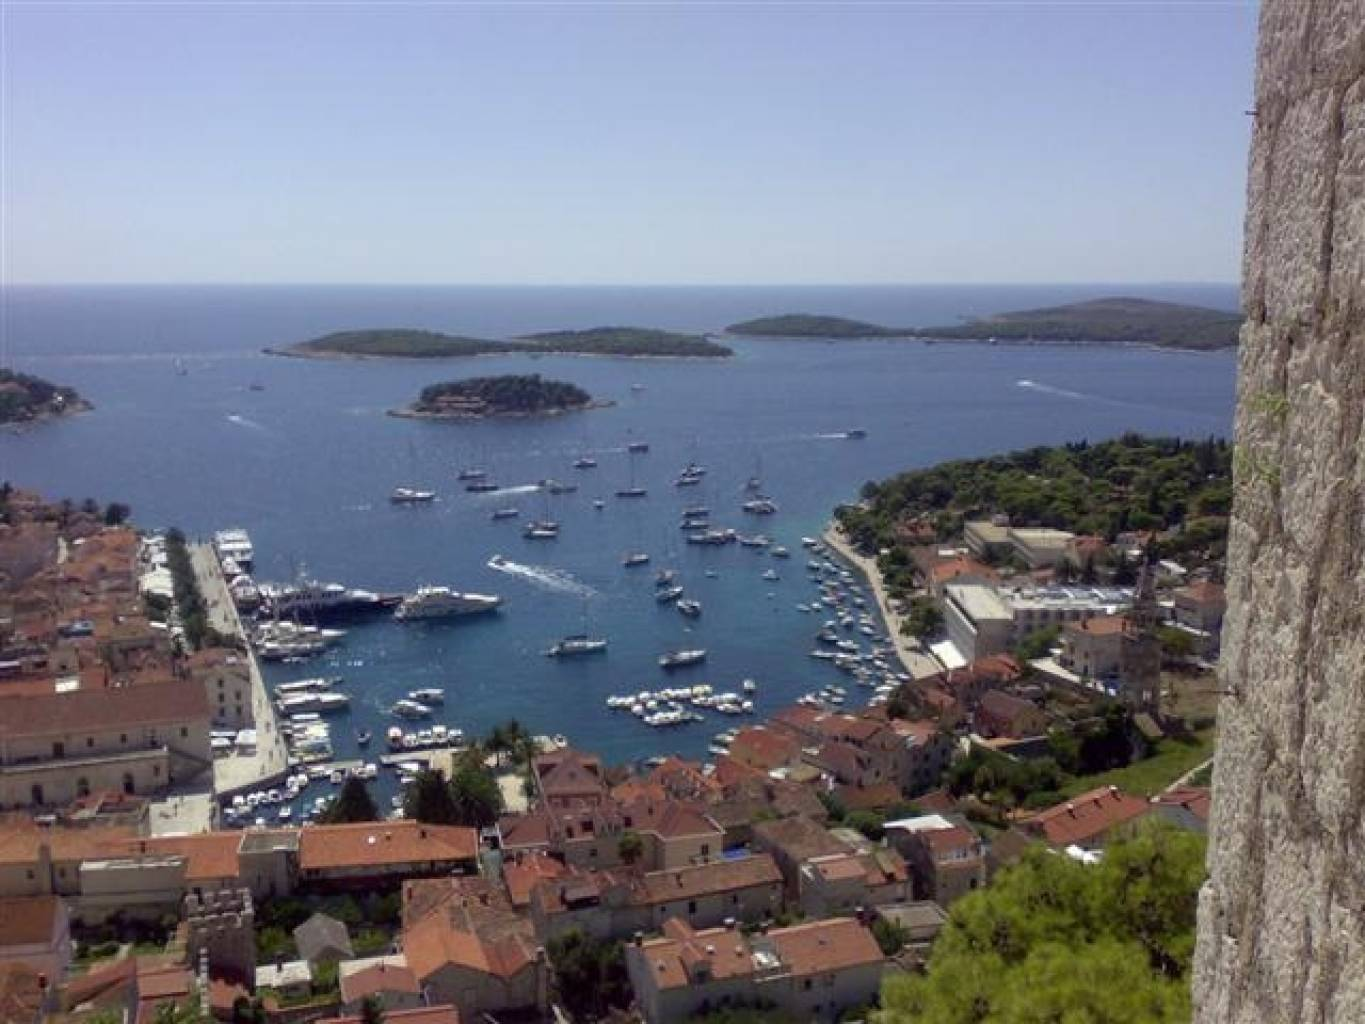 The view from the fortress above Hvar town